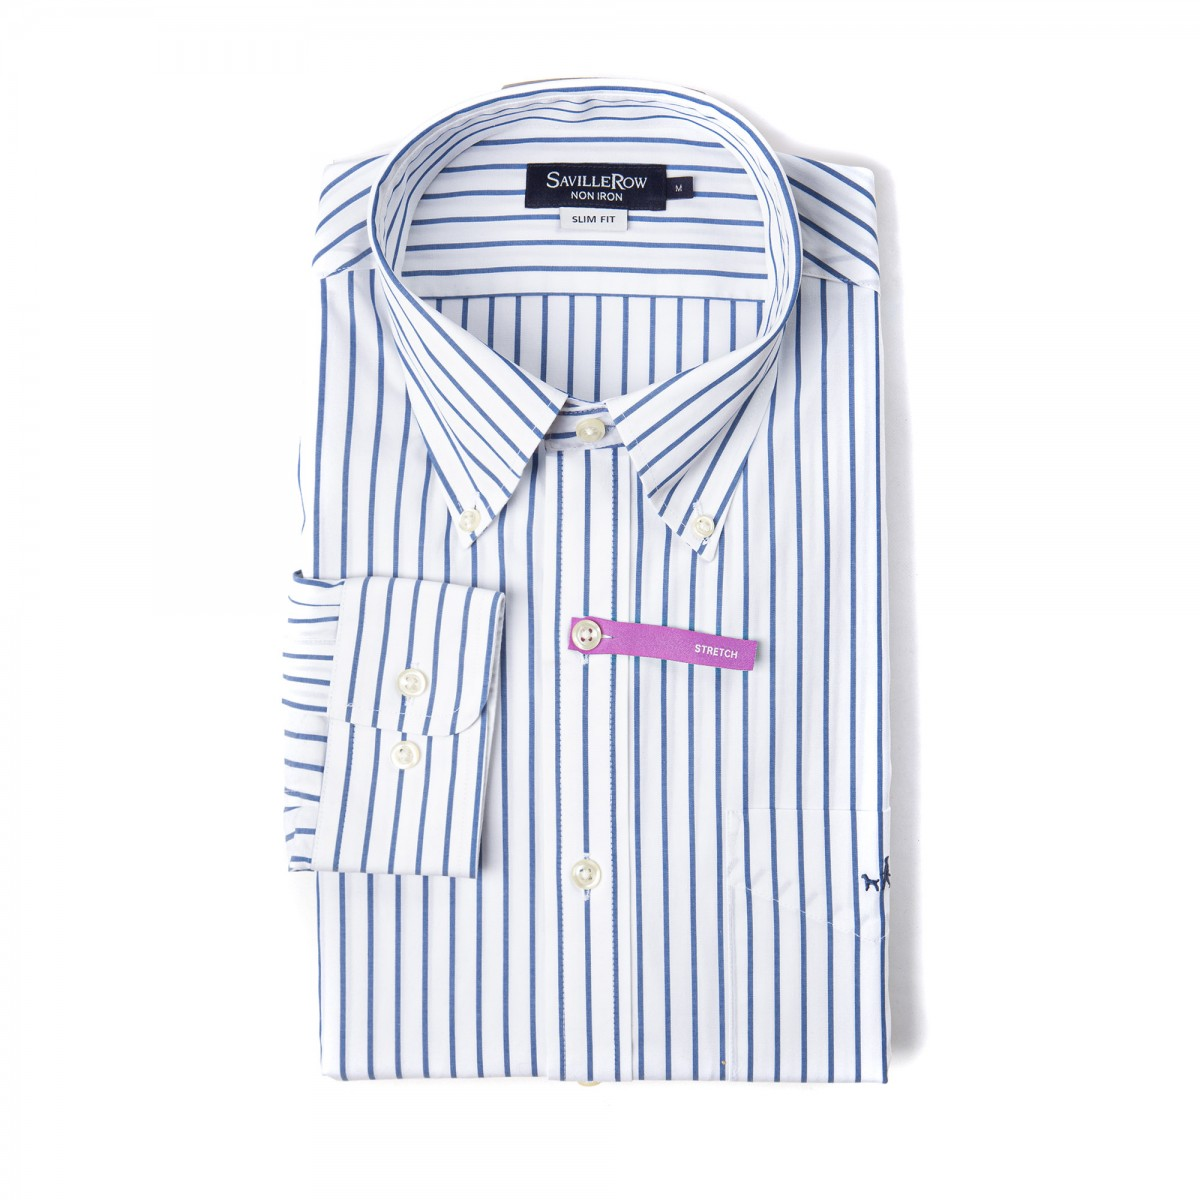 Camisa Vestir Button Down Calce Slim Non Iron Comfort Stretch A Rayas